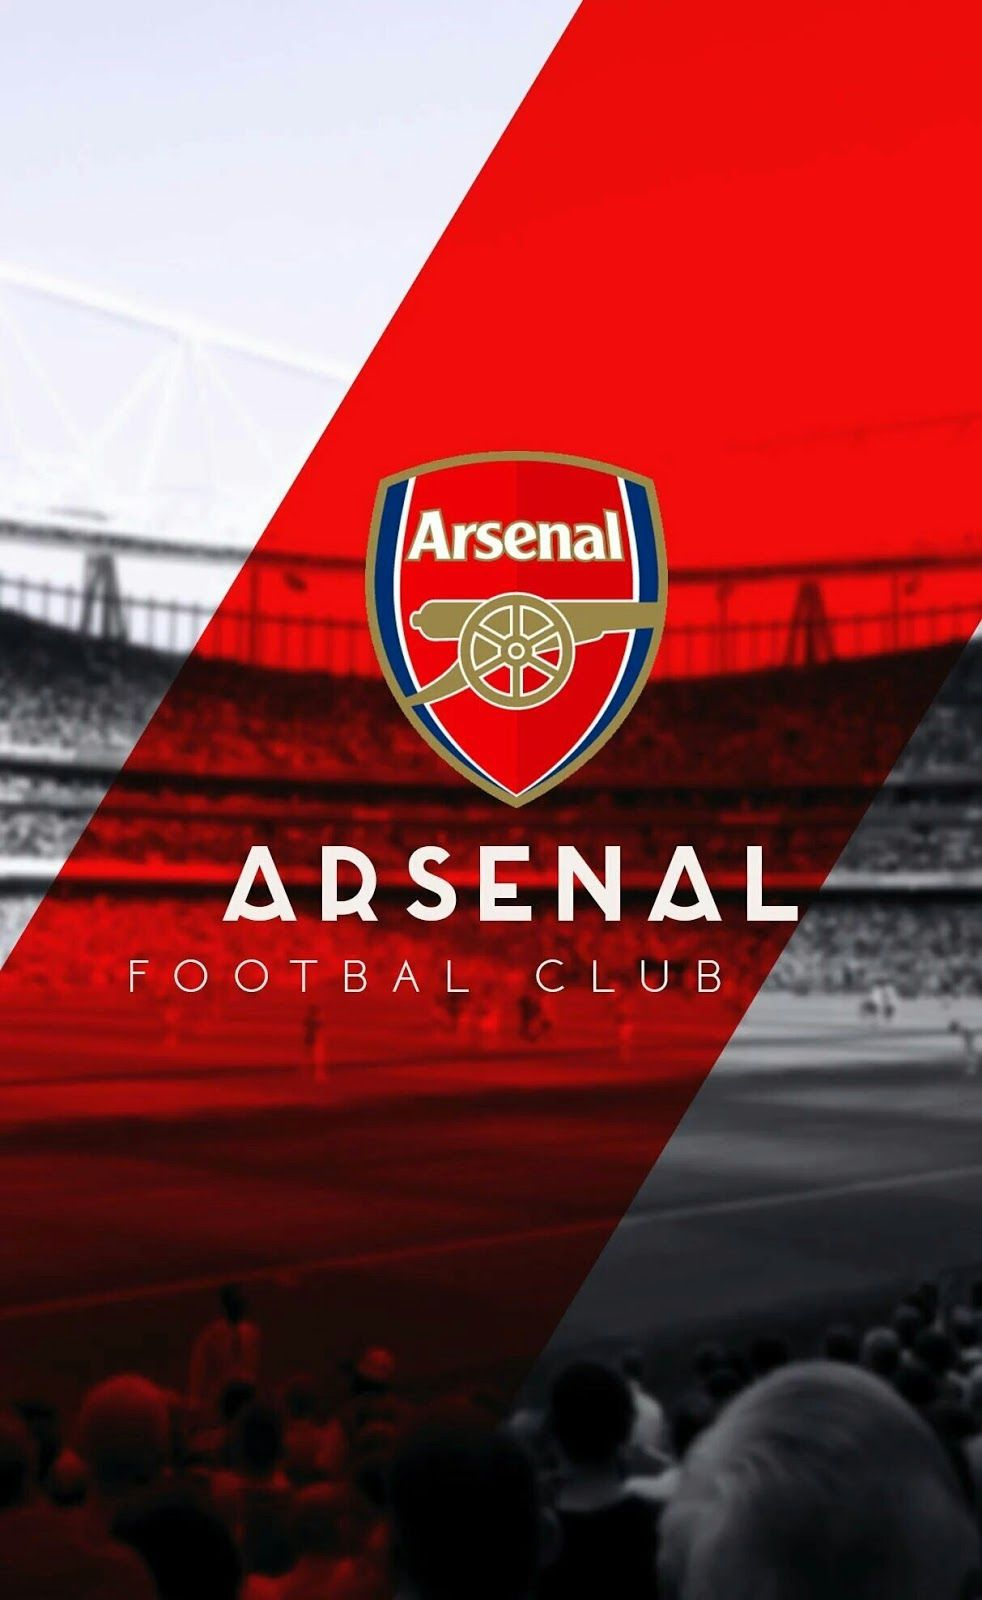 arsenal wallpaper hd for iphone x